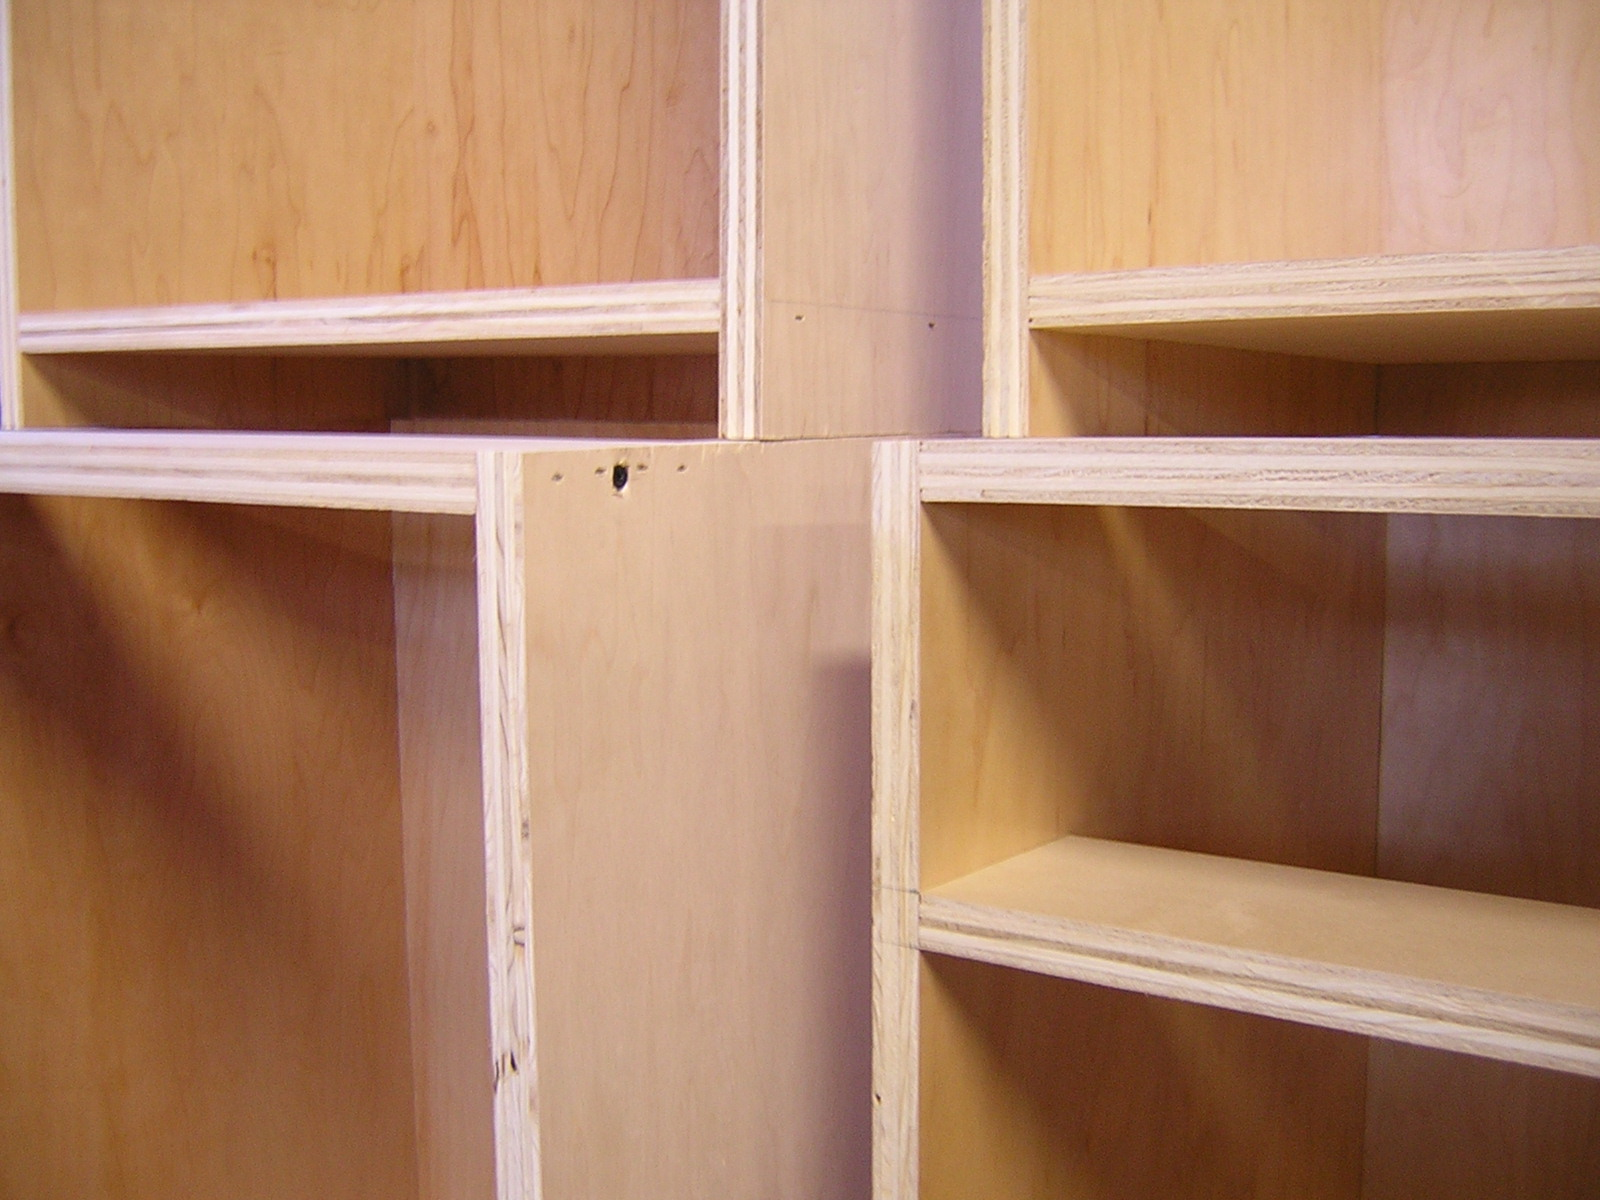 plywood kitchen cabinets online cabinet layout tool stainless steel or interior